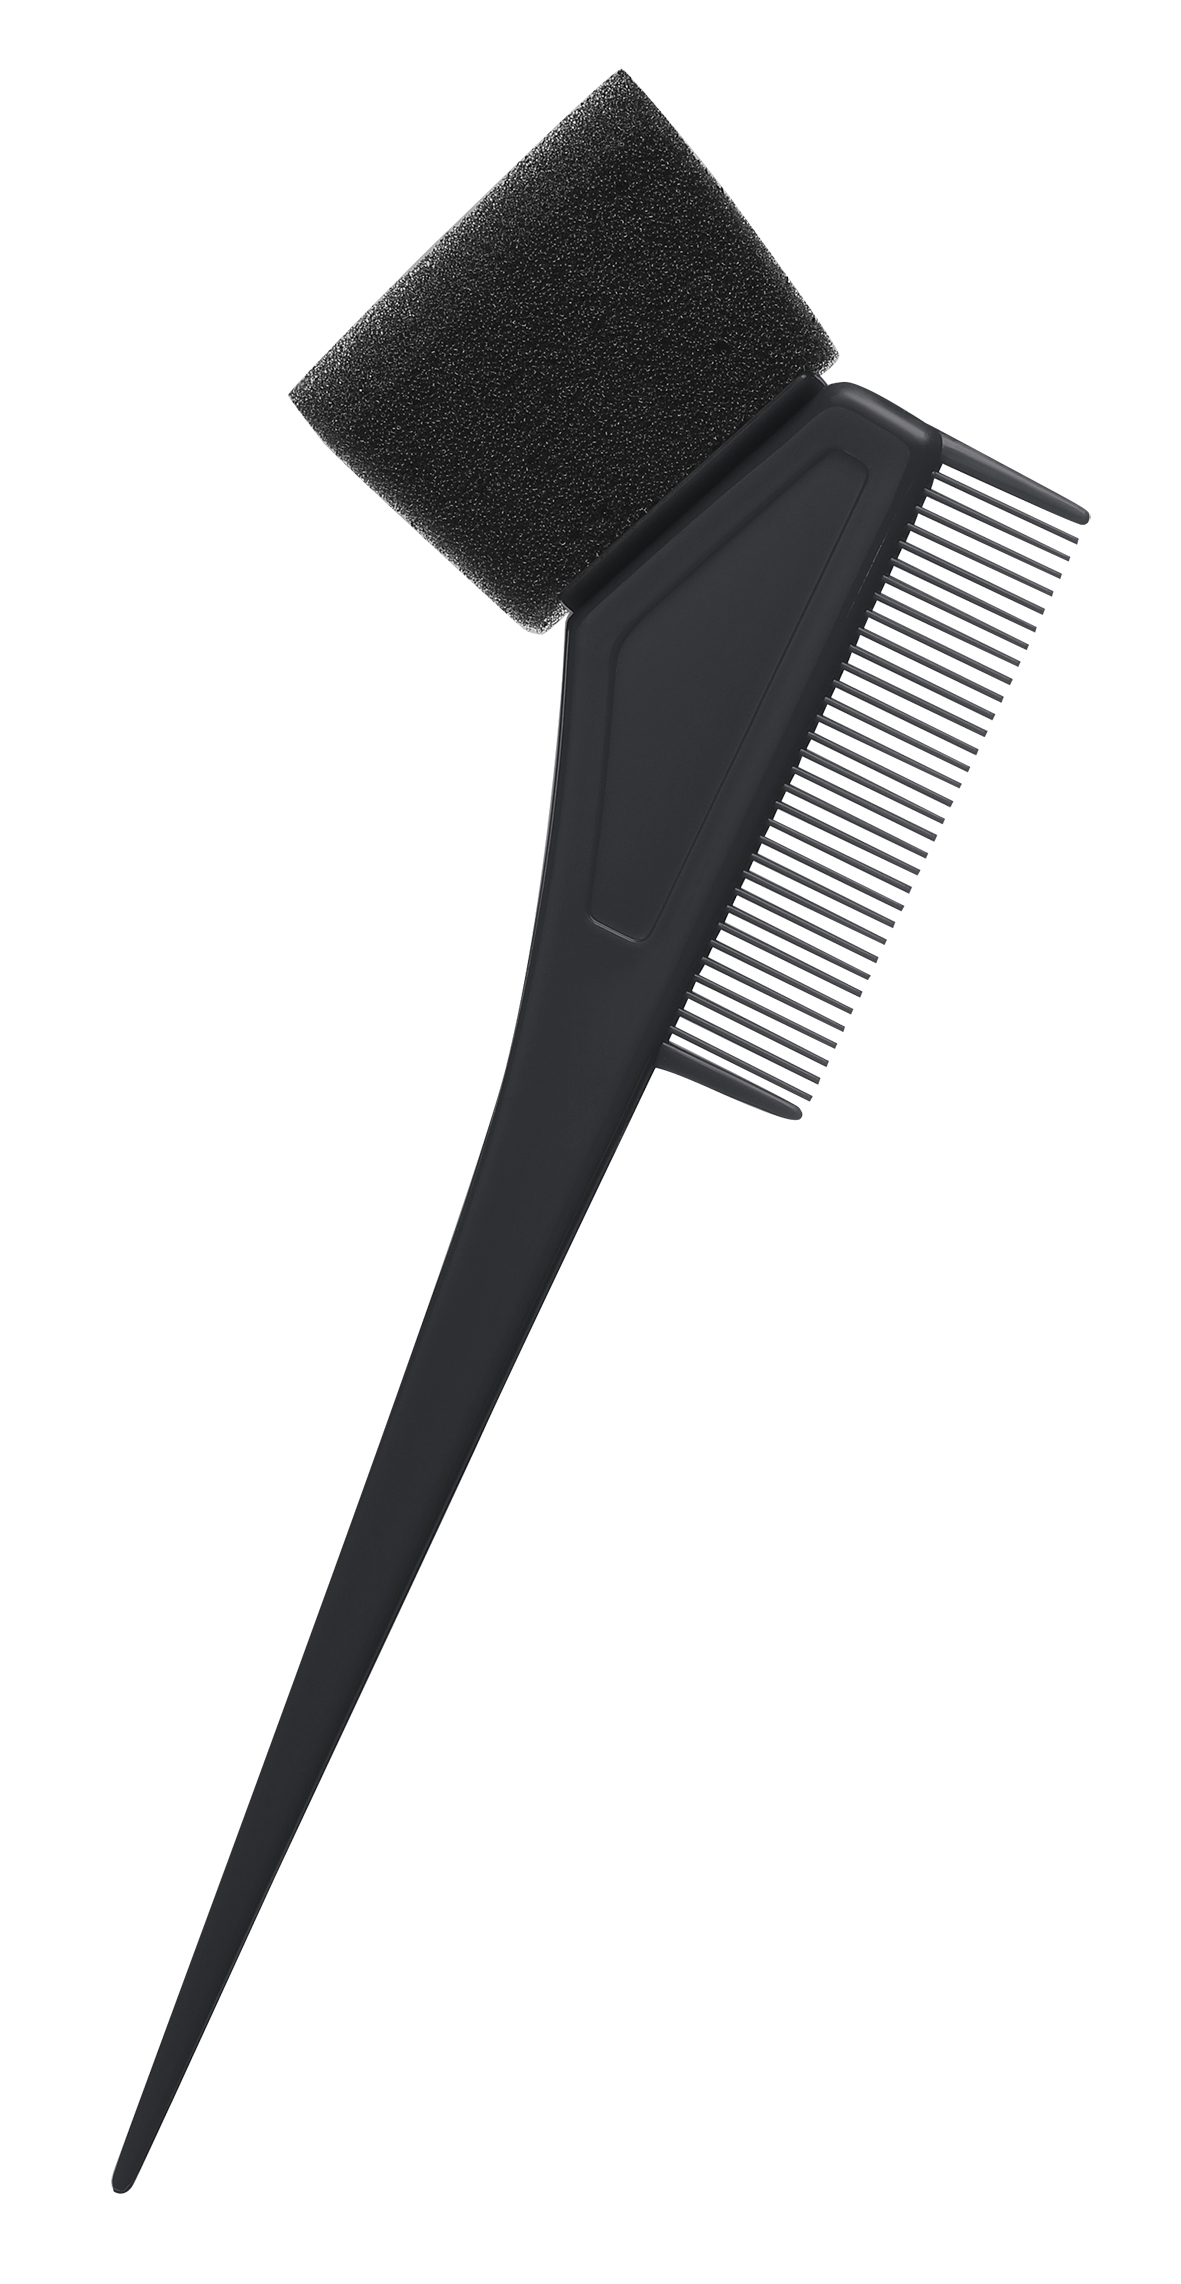 Tinting-brush-with-comb---sponge